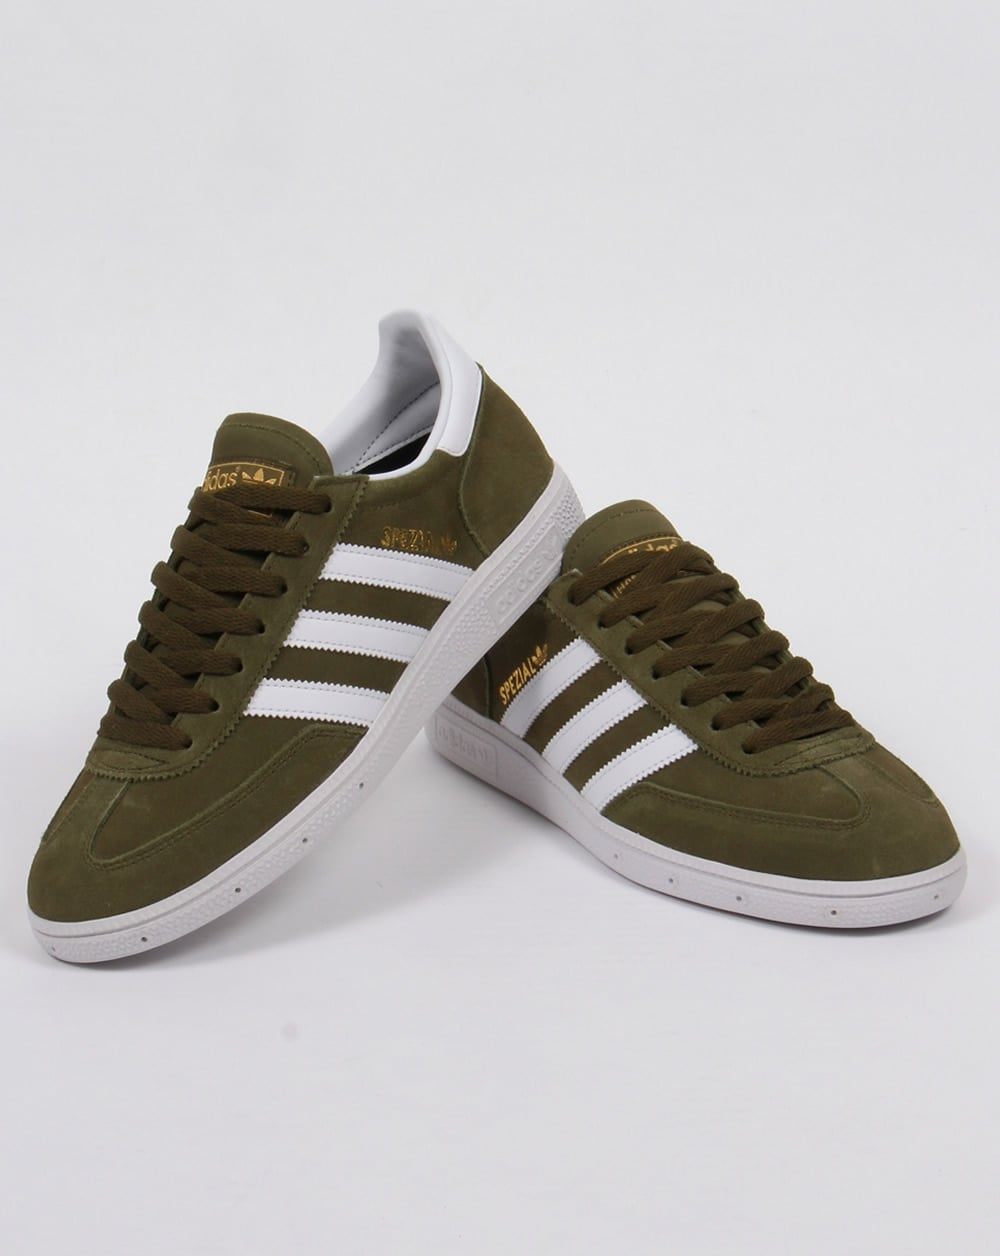 de49aebde57e Adidas Spezial Trainers Dust Green white